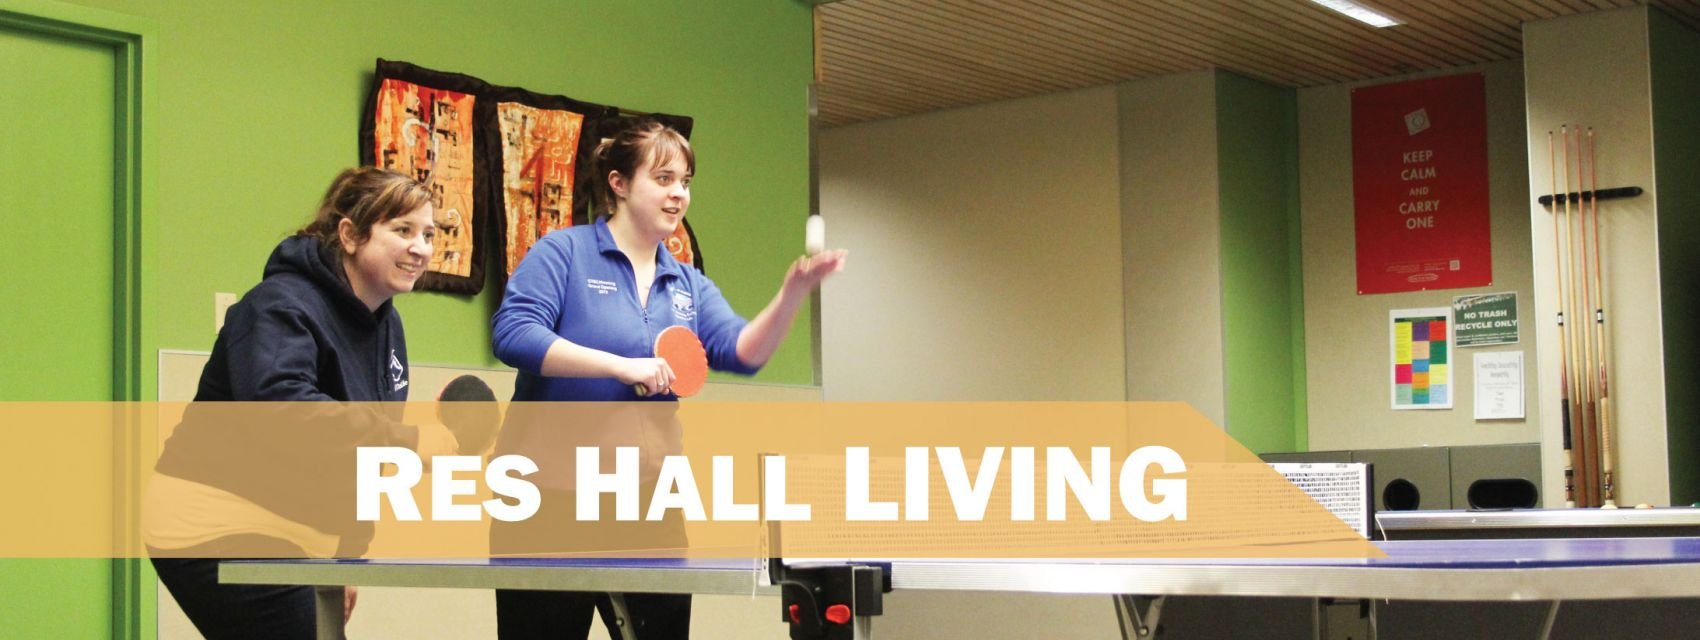 Res Hall Living - Playing games